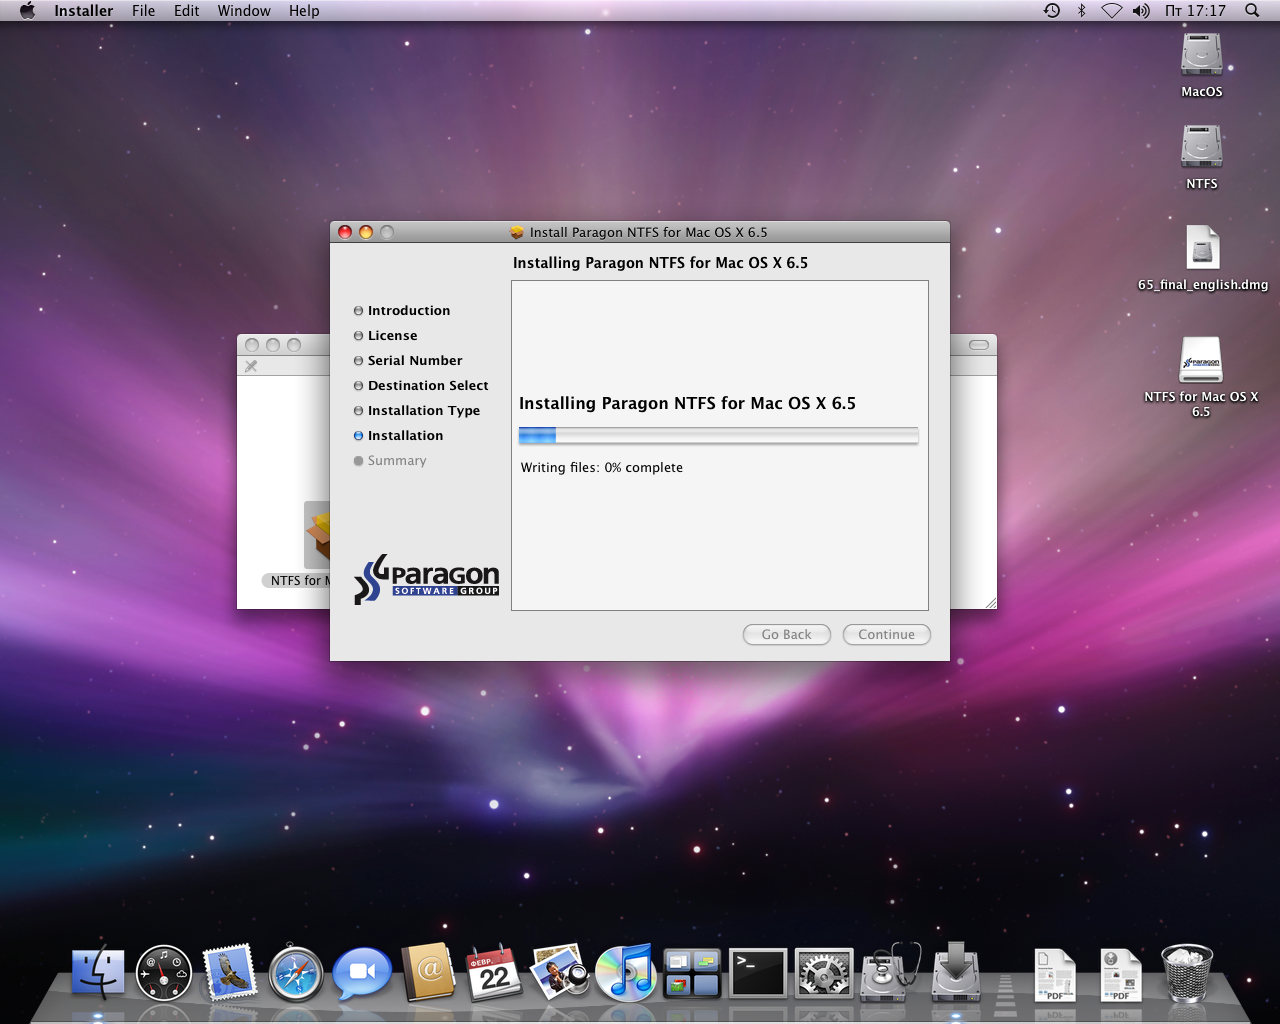 Paragon ntfs for mac os x v6.5 h33t original